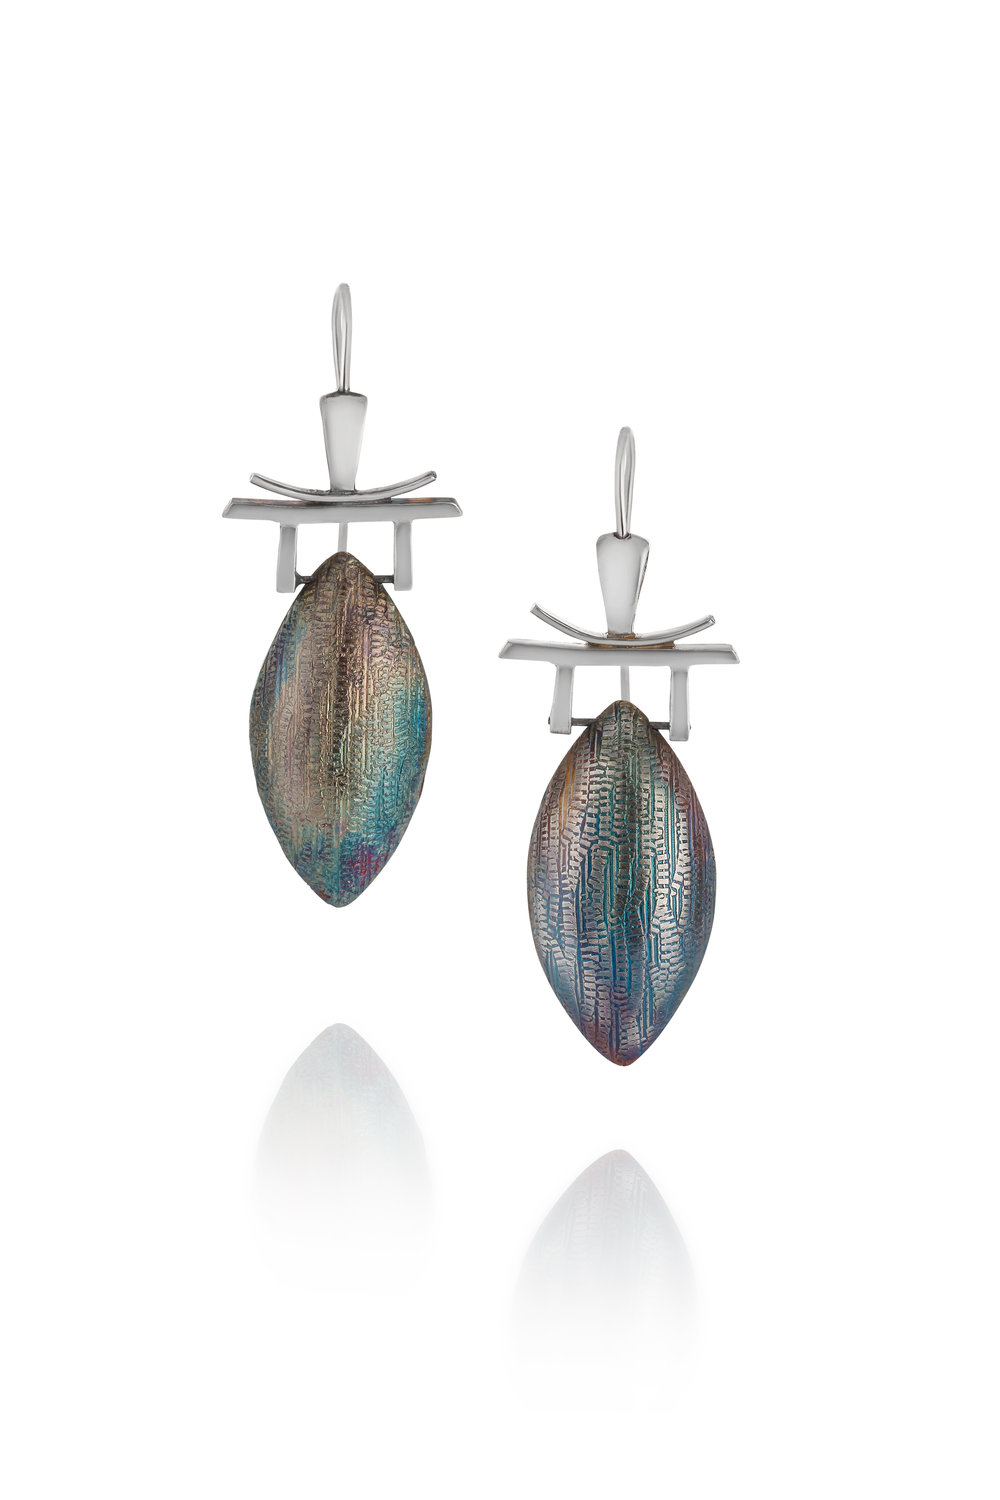 Still Waters Pagoda Earrings With Patina